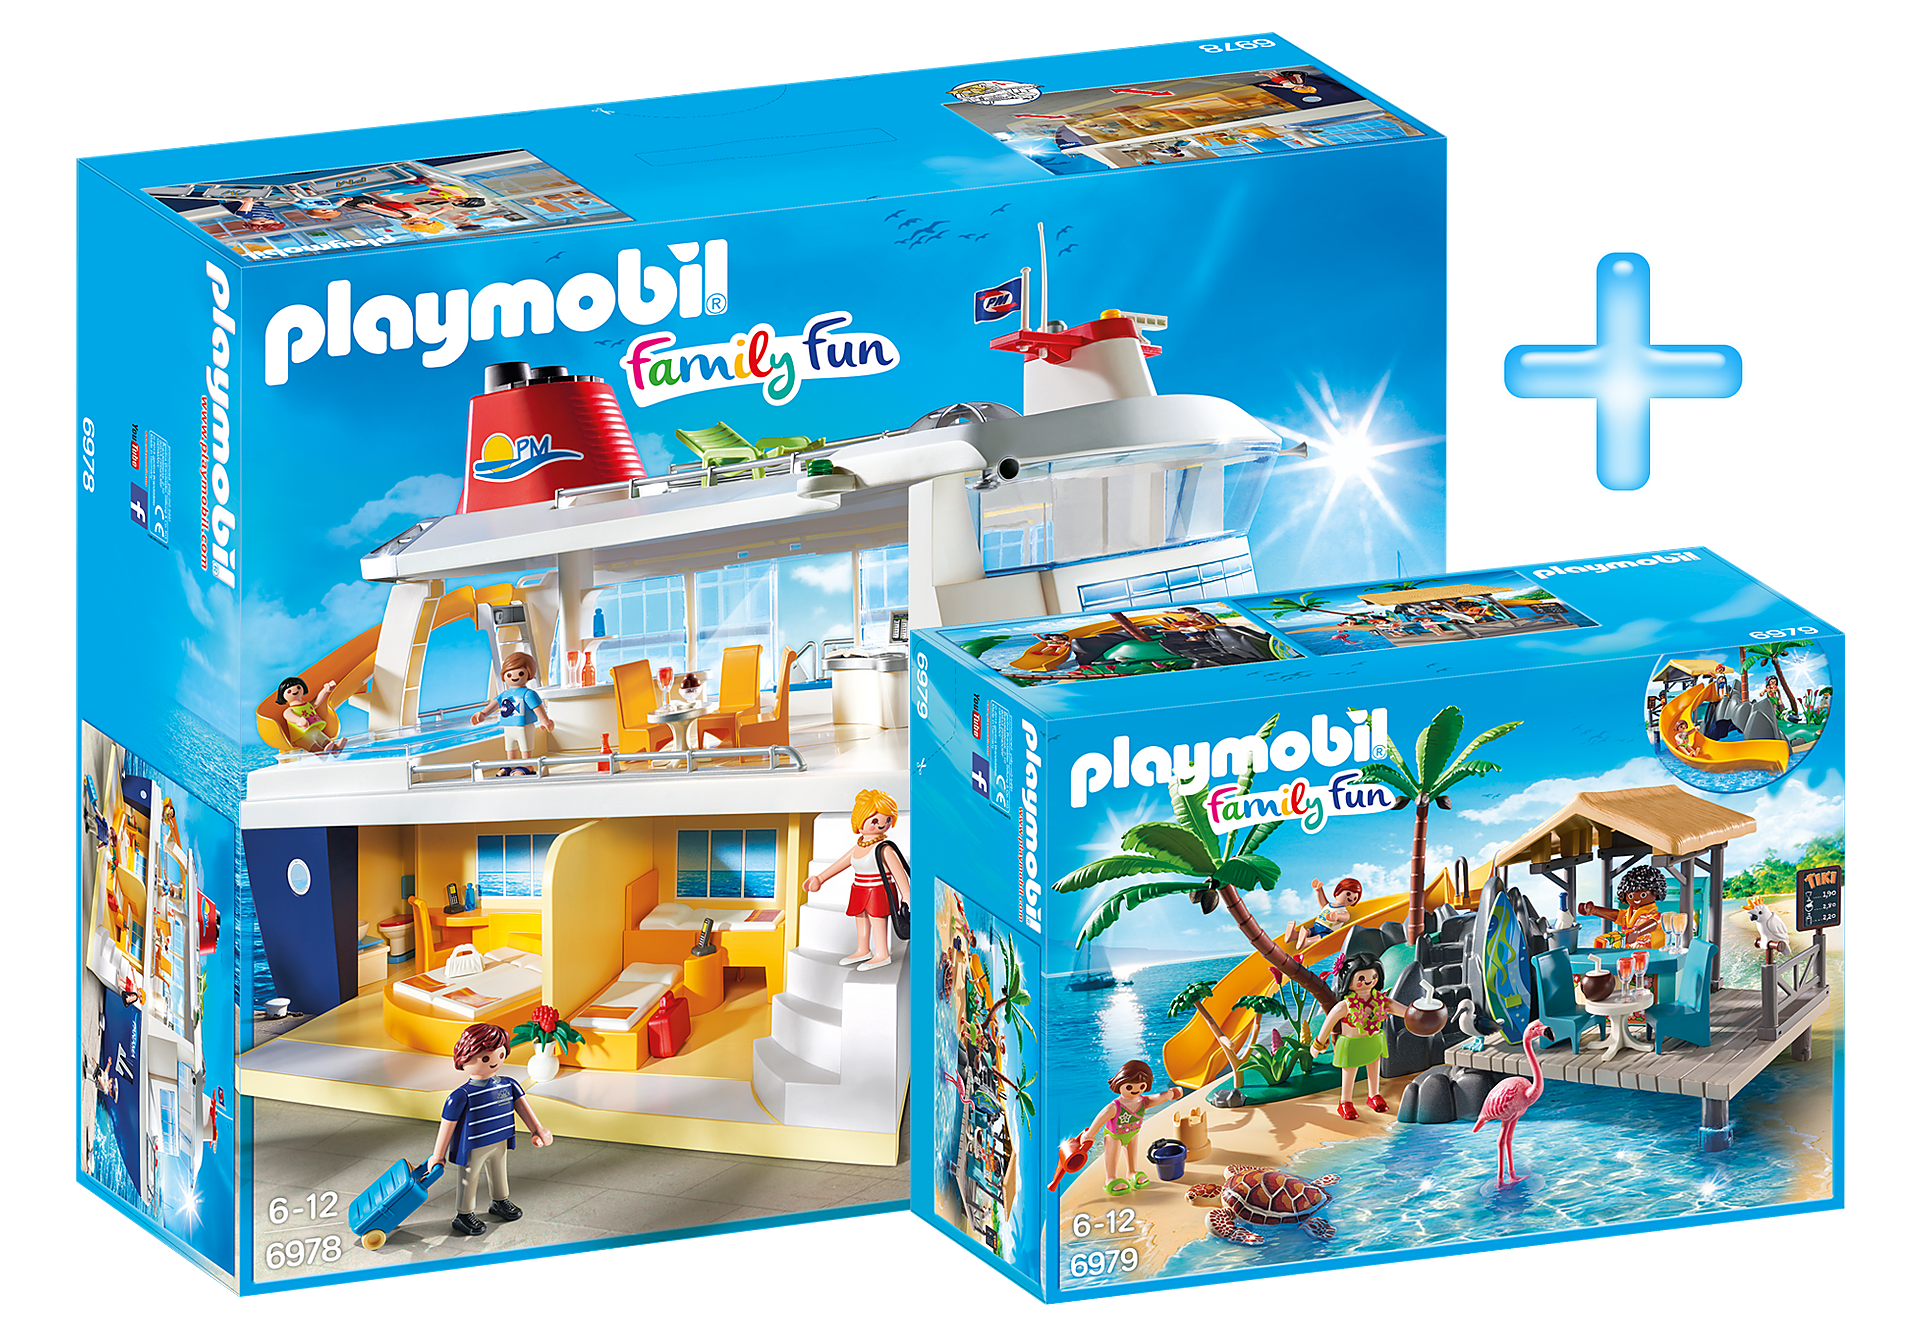 PM1909M Playmobil Vacation Bundle zoom image1